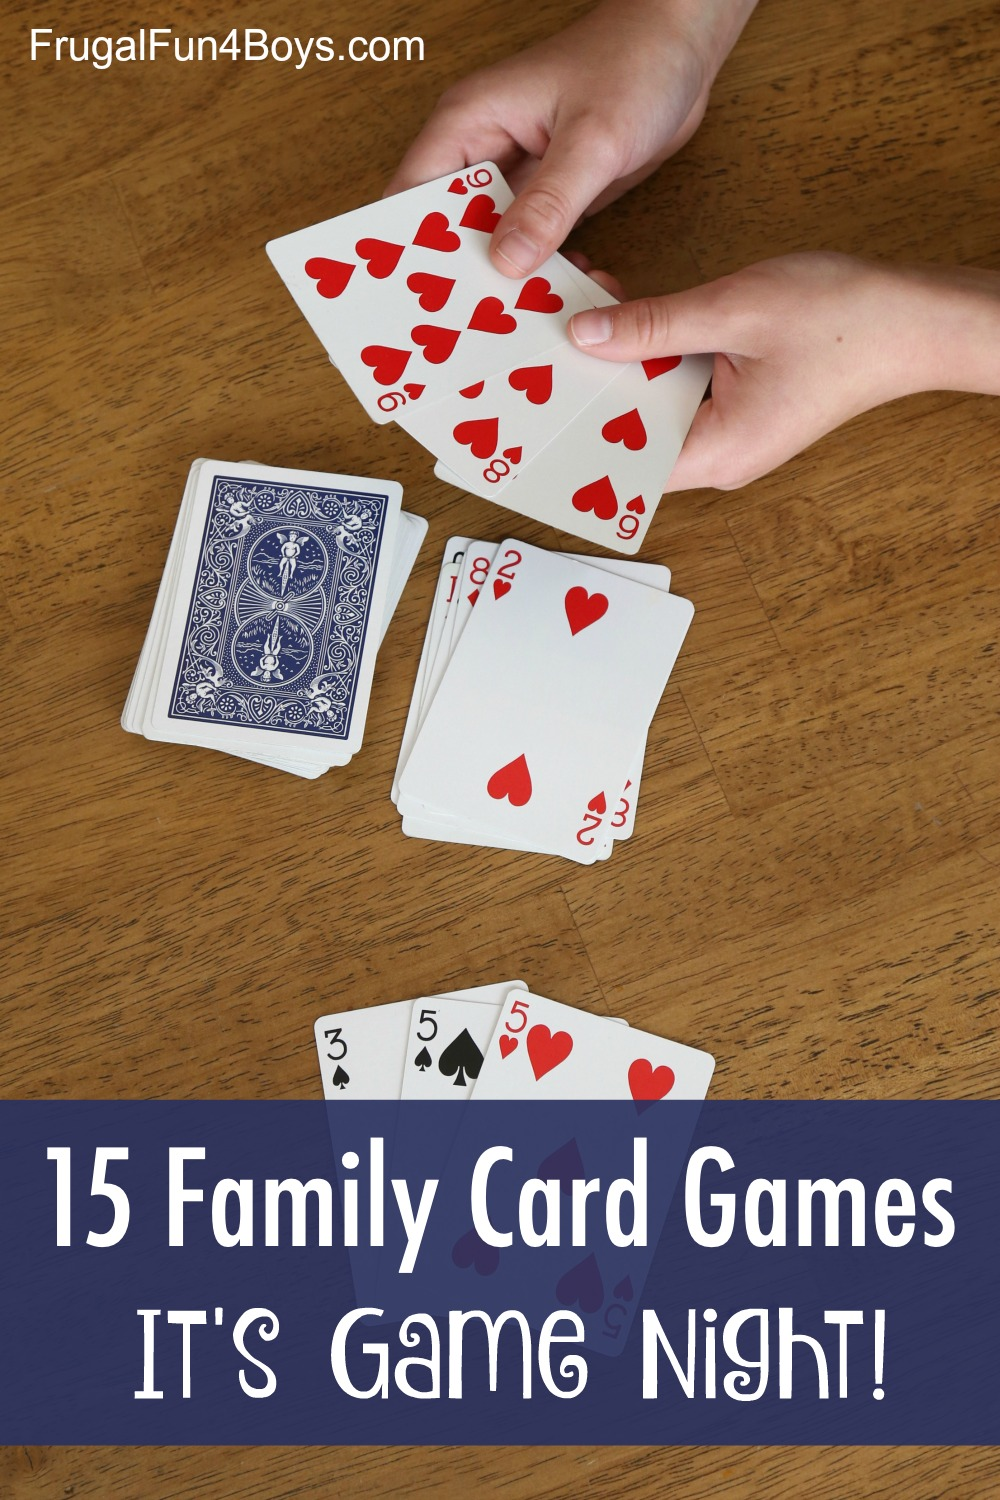 4 Card Games that are Perfect for Your Next Family Game Night